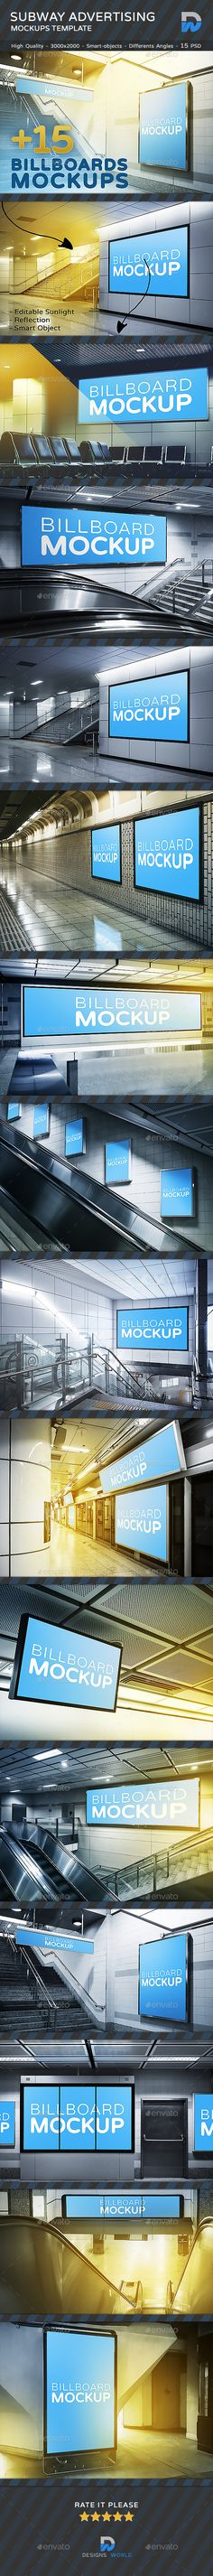 Buy Subway Advertising Mock ups by DesignsWorld on GraphicRiver. Subway Billboards Mock-ups A volume based on a cool mix of advertising mockups that cover multiple subway ad des. Dynamic Logo, Billboard, Mockup, Signage, Advertising, Photoshop, Tutorials, Graphic Design, Templates